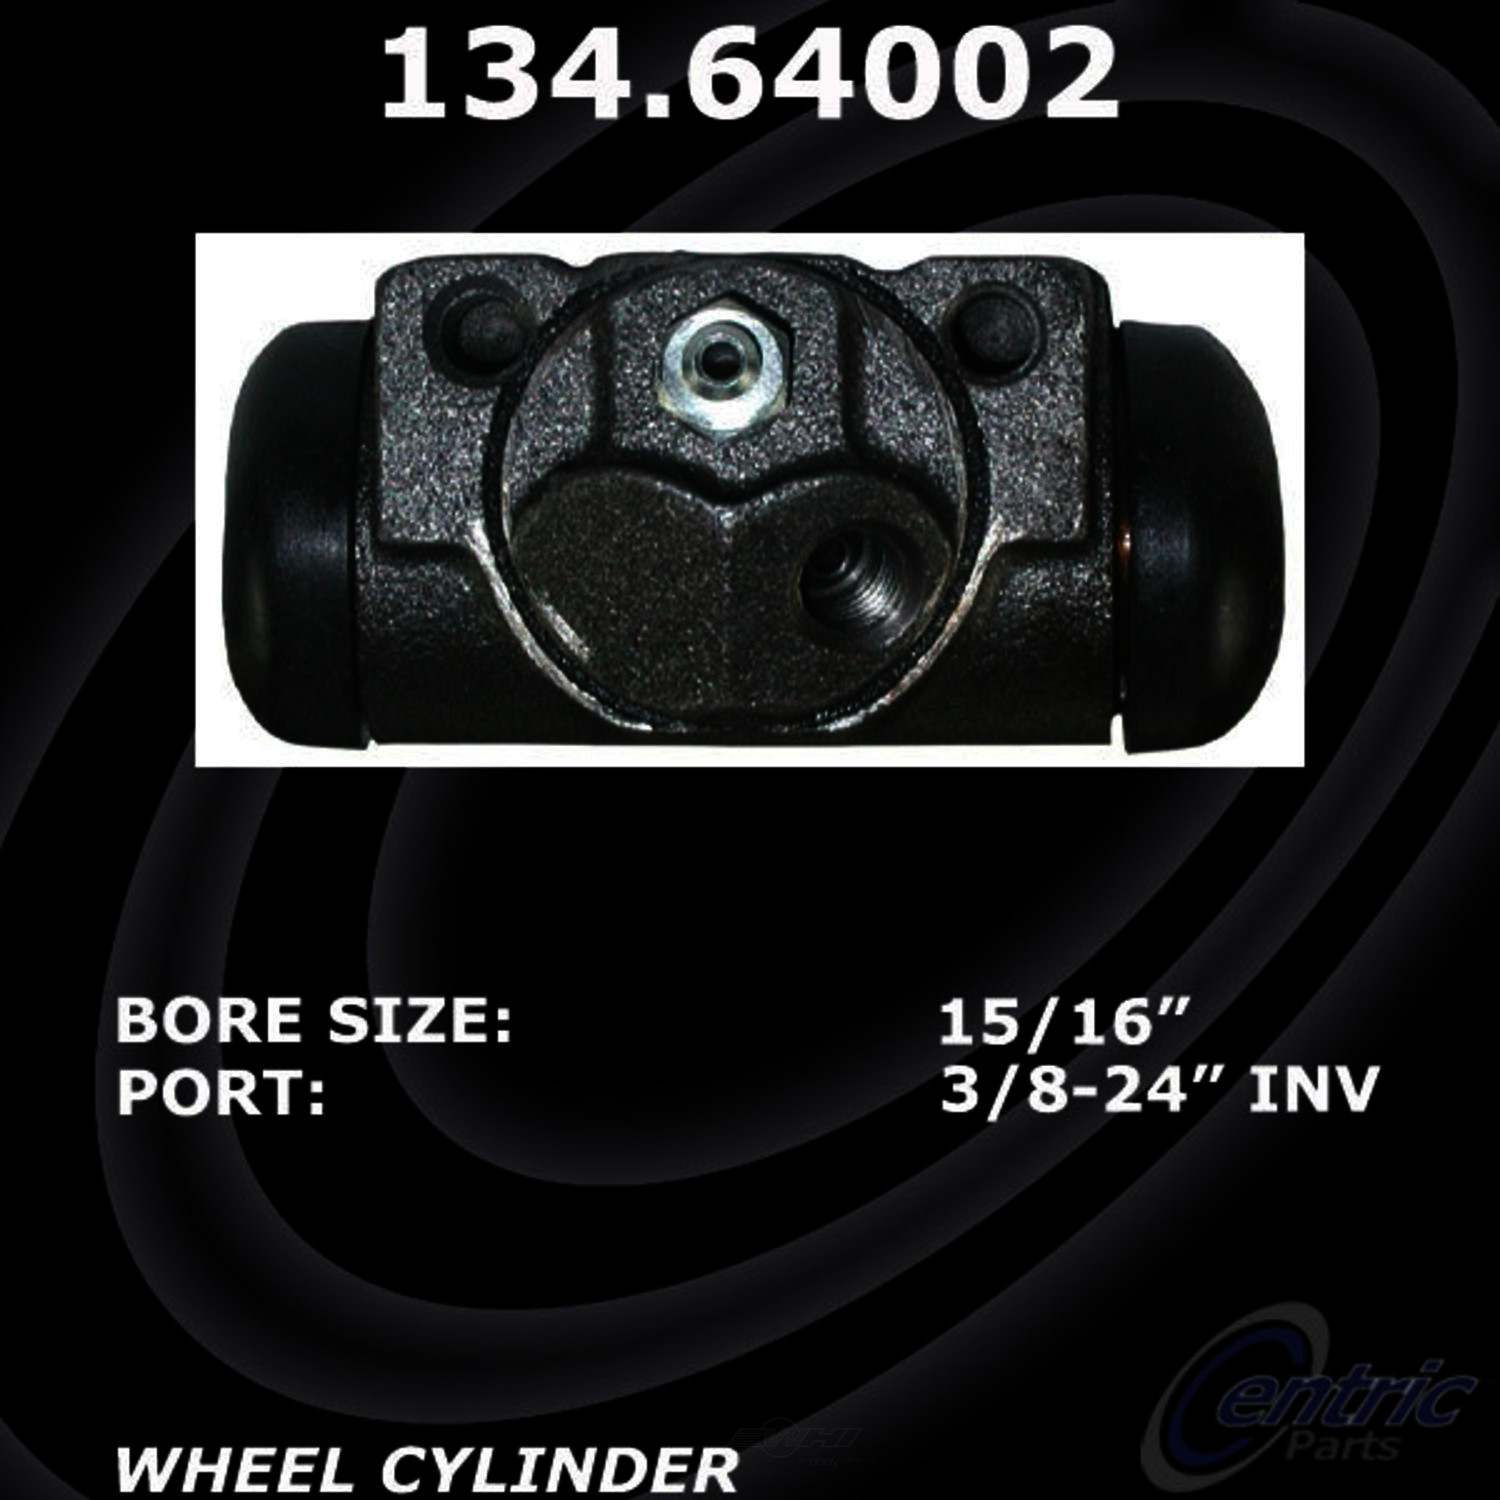 CENTRIC PARTS - Premium Wheel Cylinder-Preferred (Rear Right) - CEC 134.64002